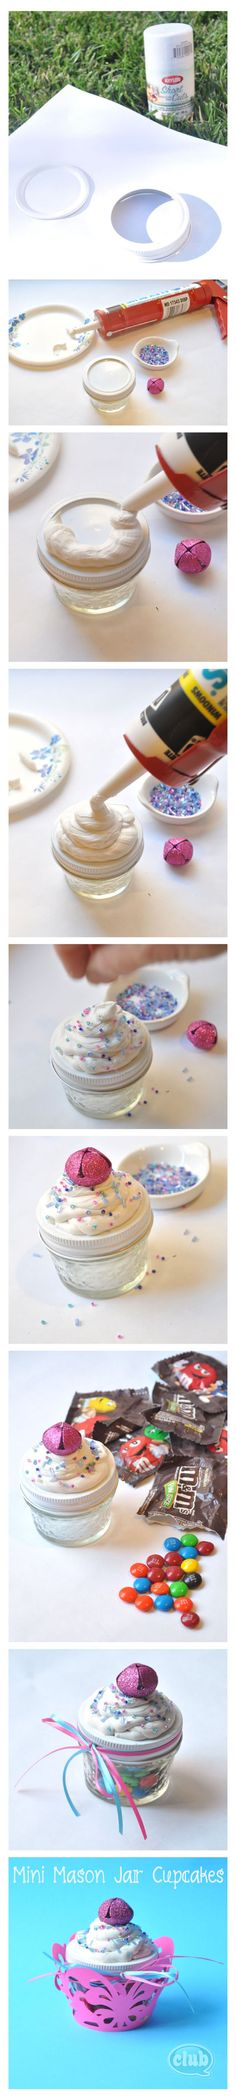 DIY Mini Mason Jar Candy Cupcakes.